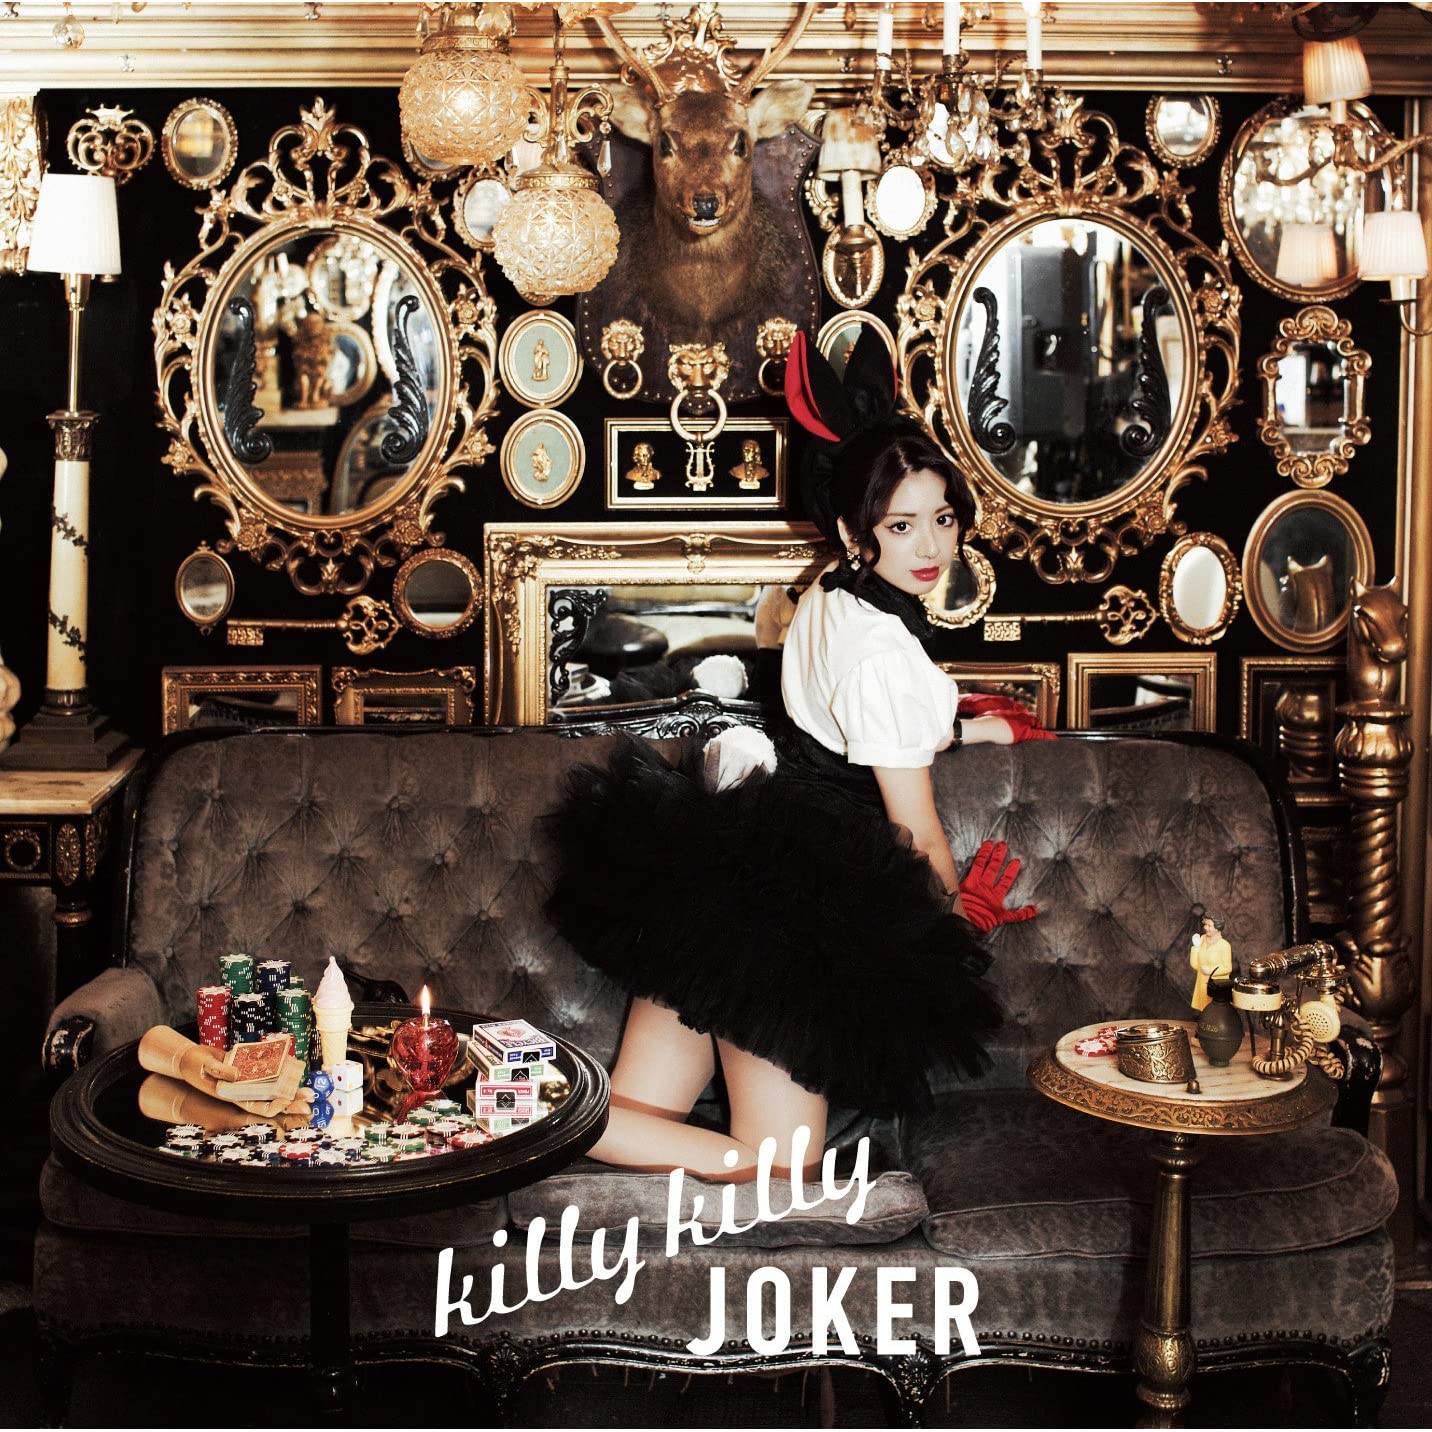 Kanon Wakeshima killy killy JOKER